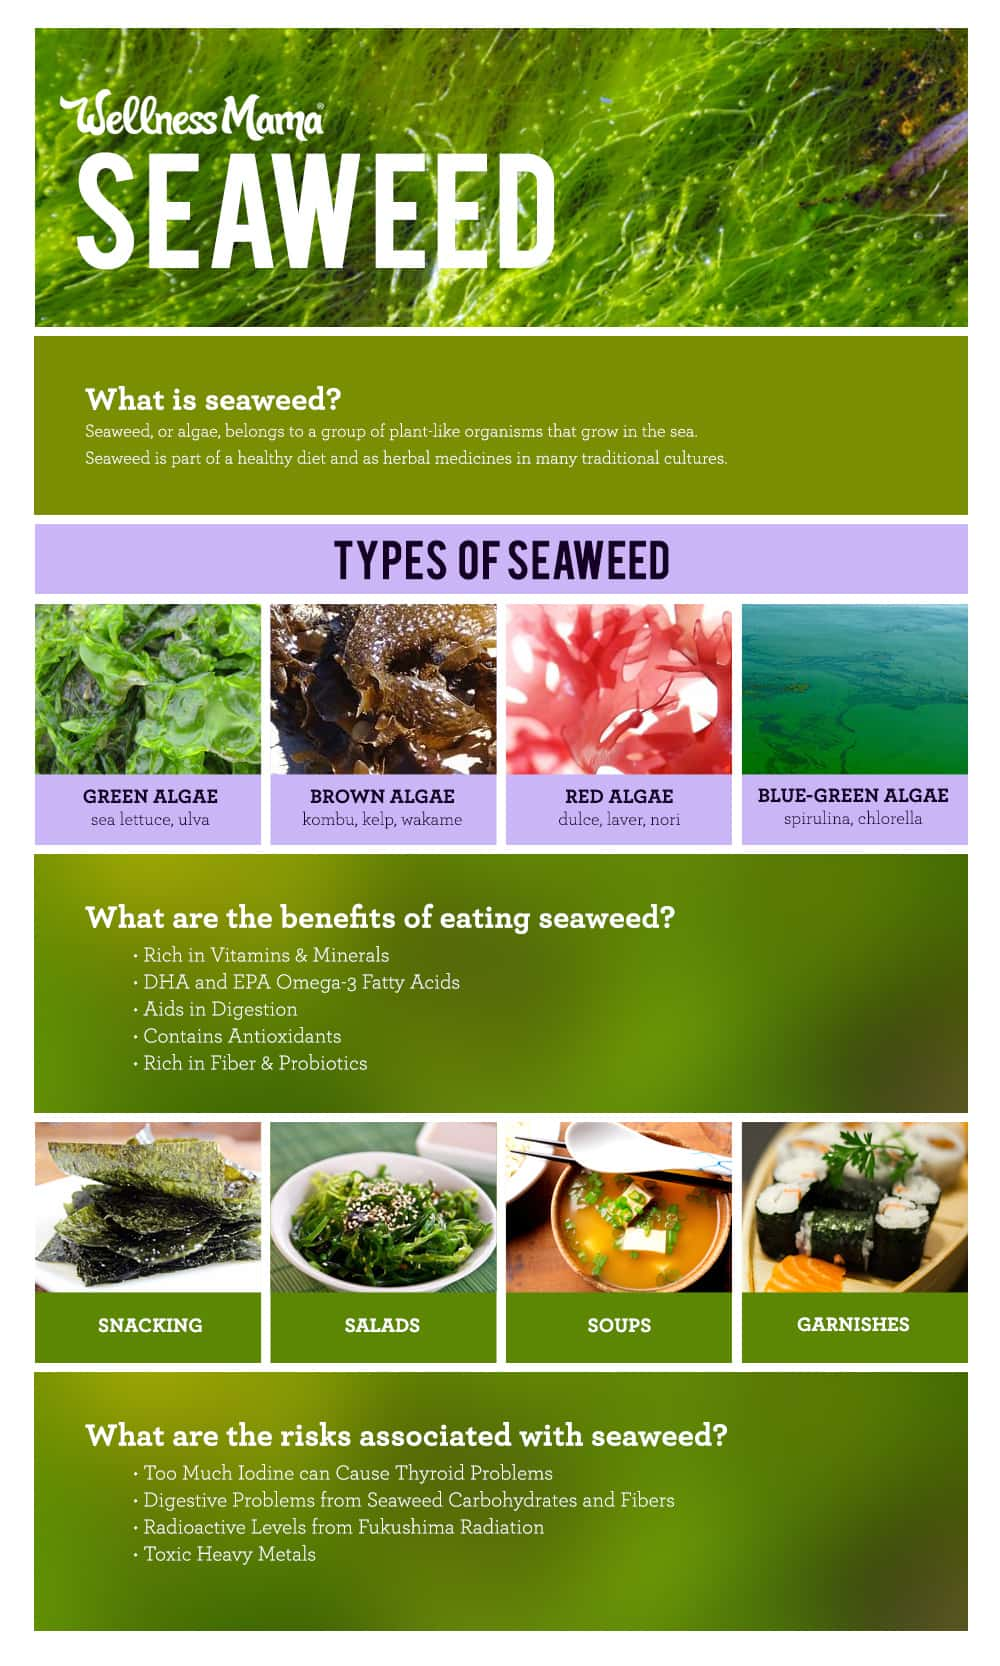 About Seaweed